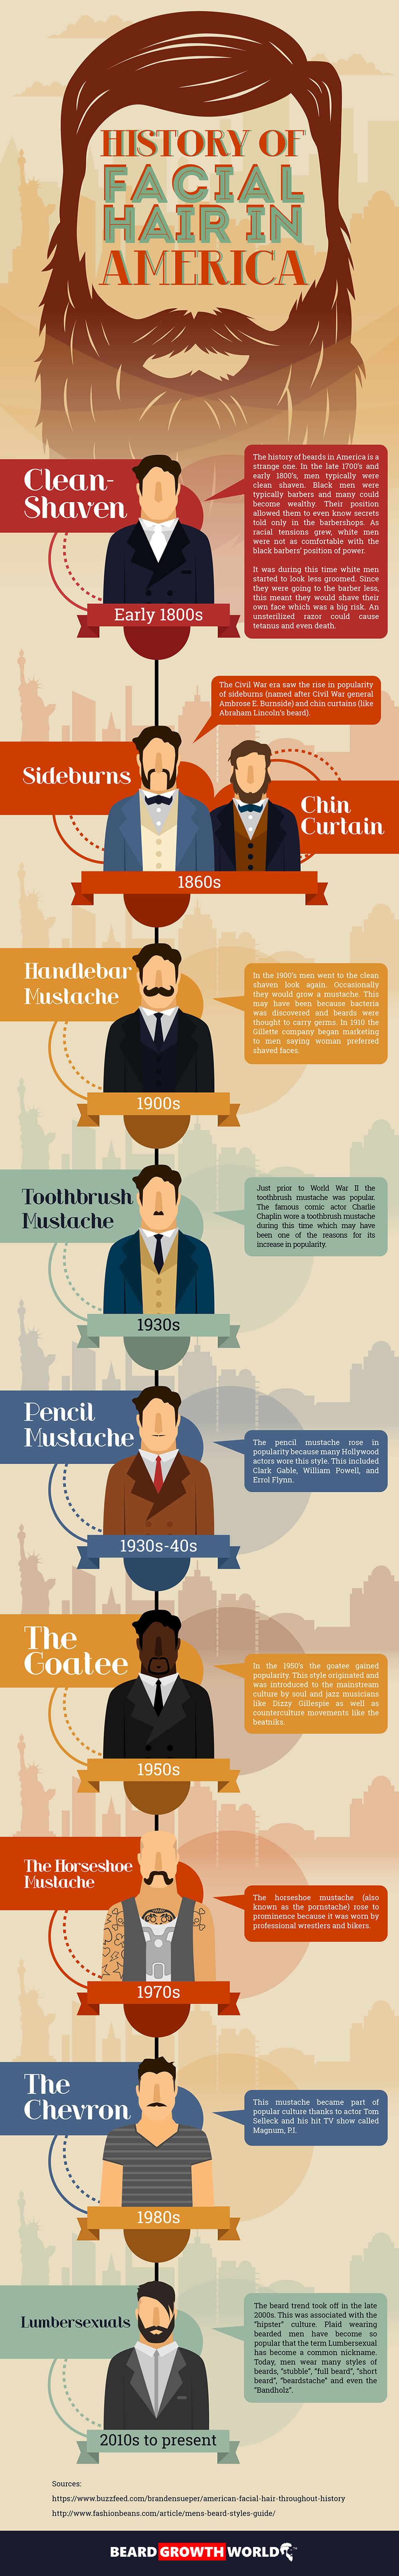 history of facial hair in america infographic